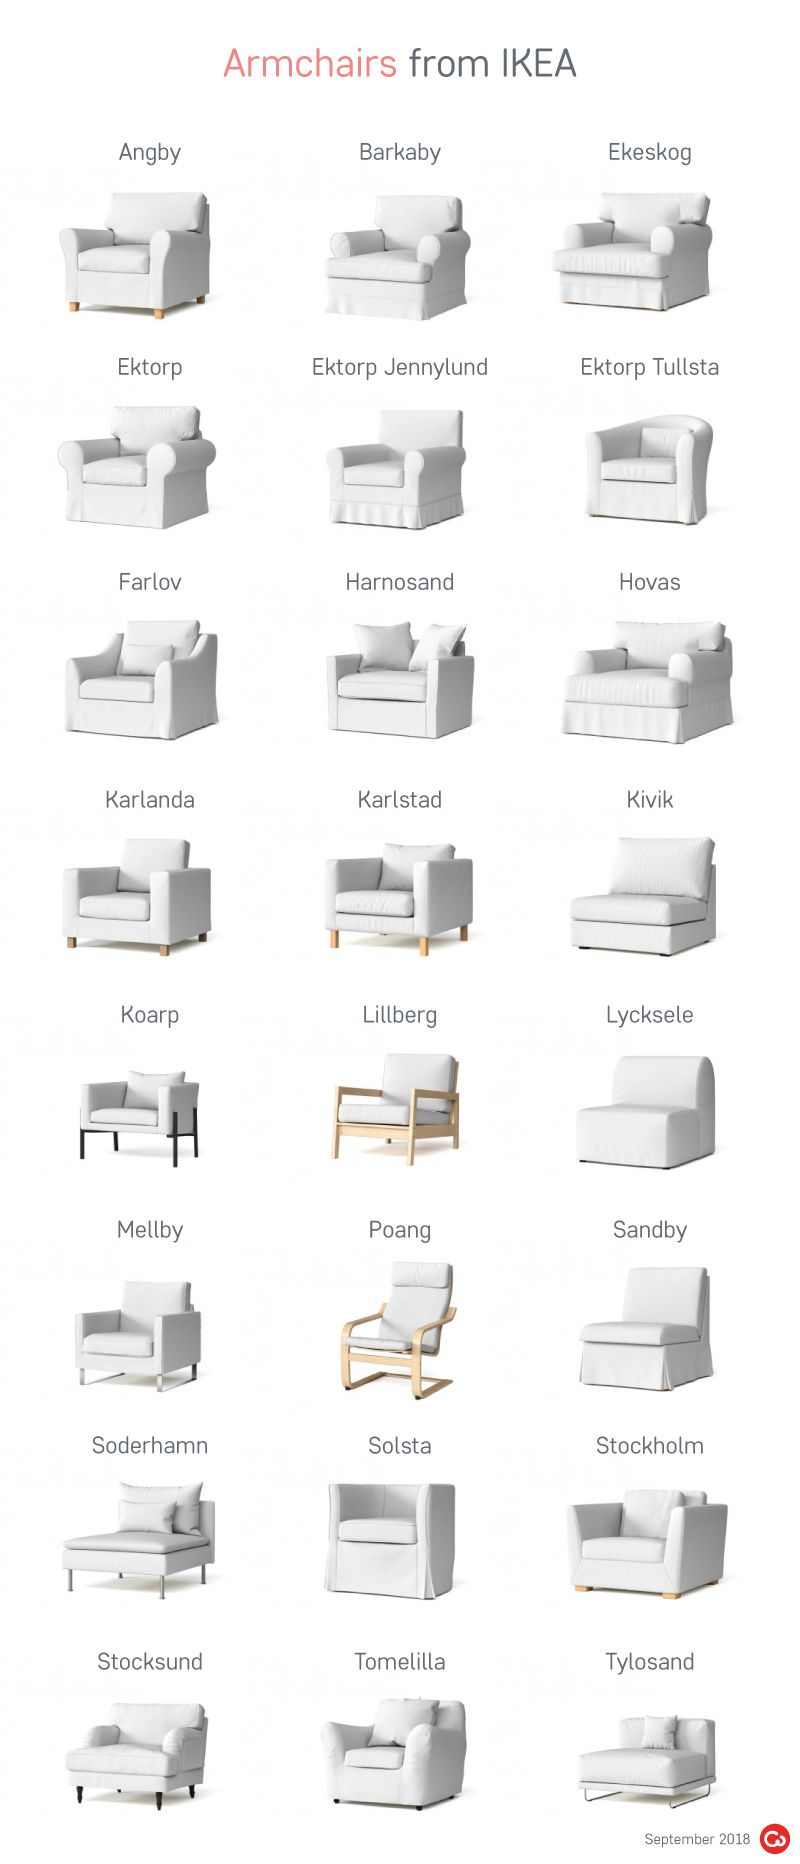 Replacement Ikea Sofa Covers For Discontinued Ikea Couch Models Ikea Armchair Arm Chair Covers Ikea Sofa Covers